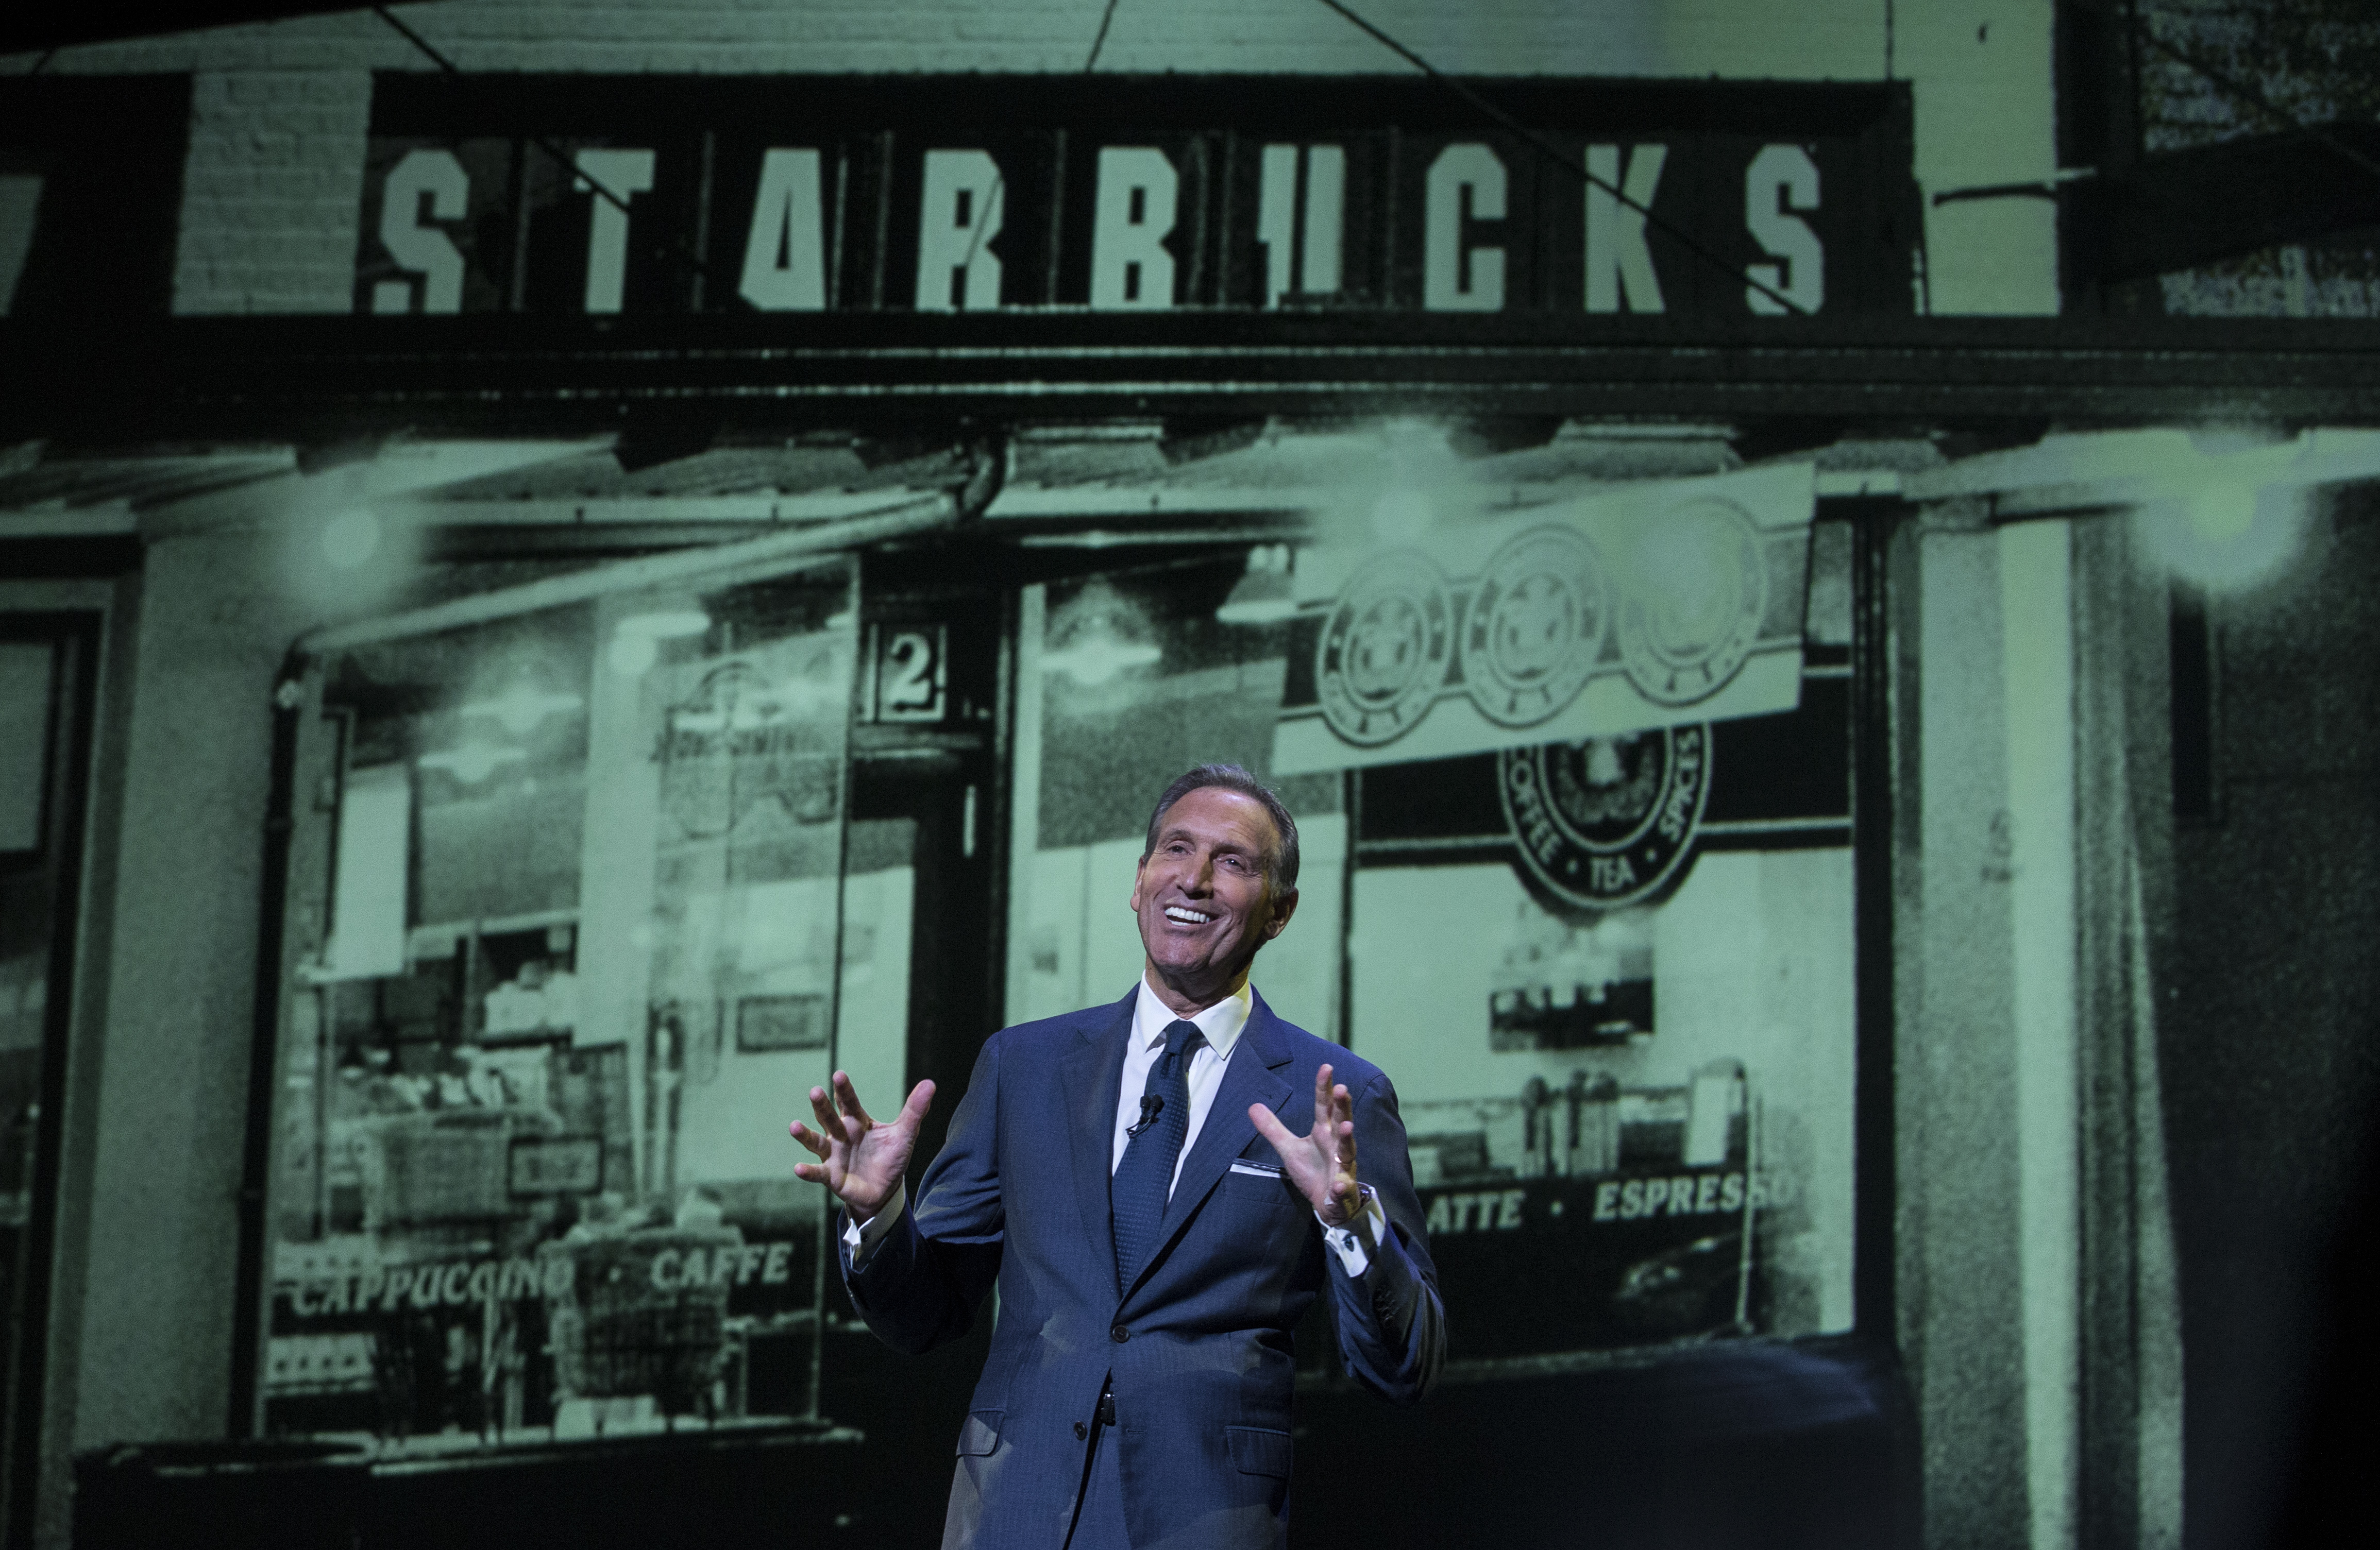 SEATTLE, WA - MARCH 23: Starbucks CEO Howard Schultz speaks during during the Starbucks Annual Shareholders Meeting on March 23, 2016 in Seattle, Washington. Schultz reported on the company's in expansion in China. (Photo by Stephen Brashear/Getty Images)